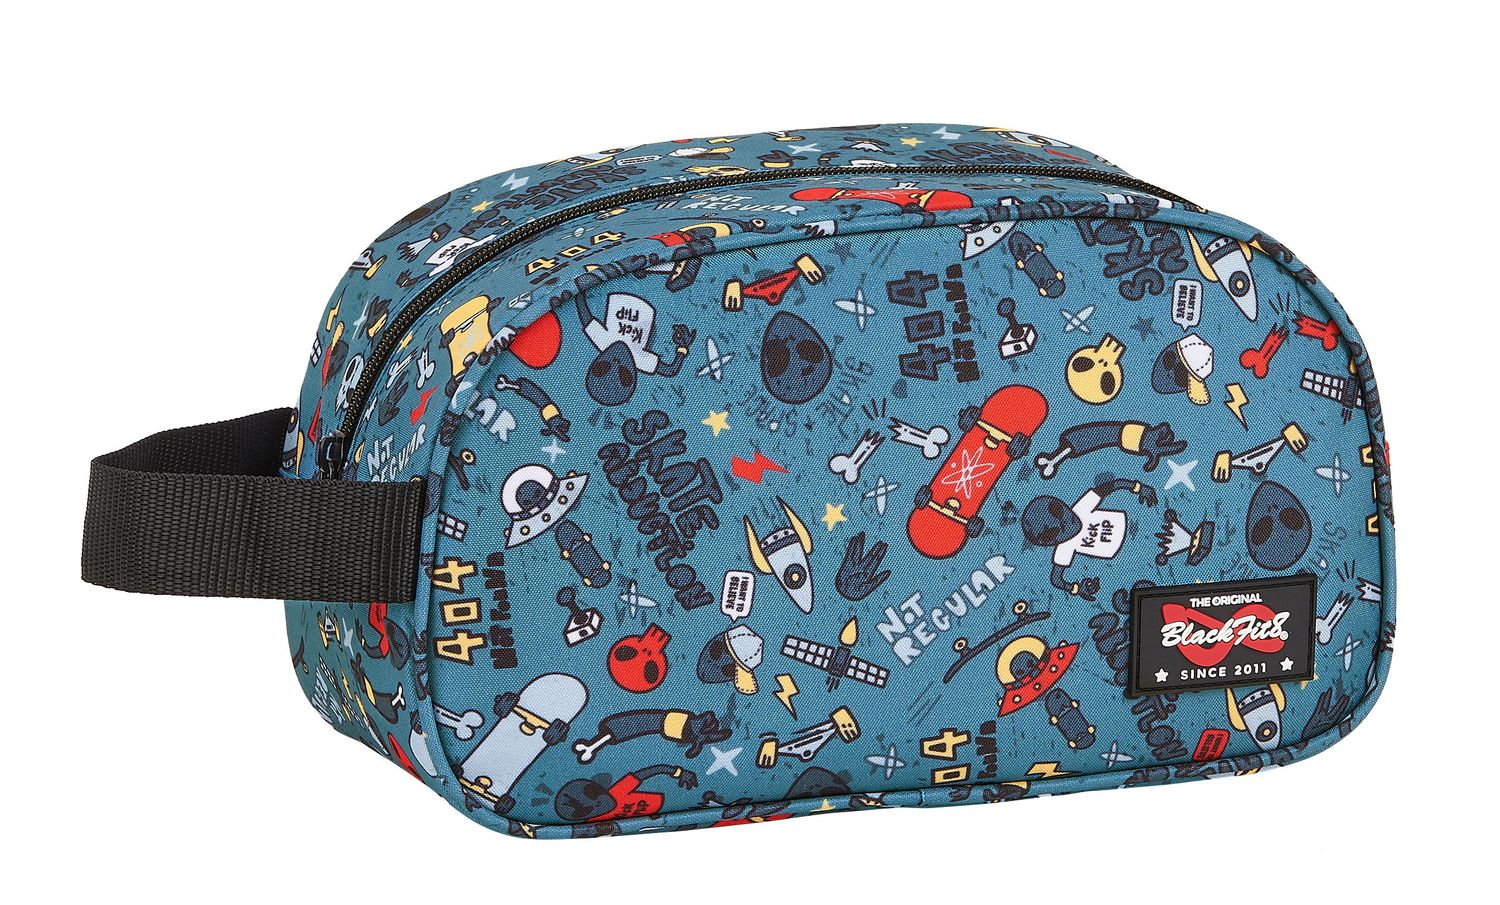 BLACKFIT8 ALIEN SKATE Toiletry Travel Bag – image 1